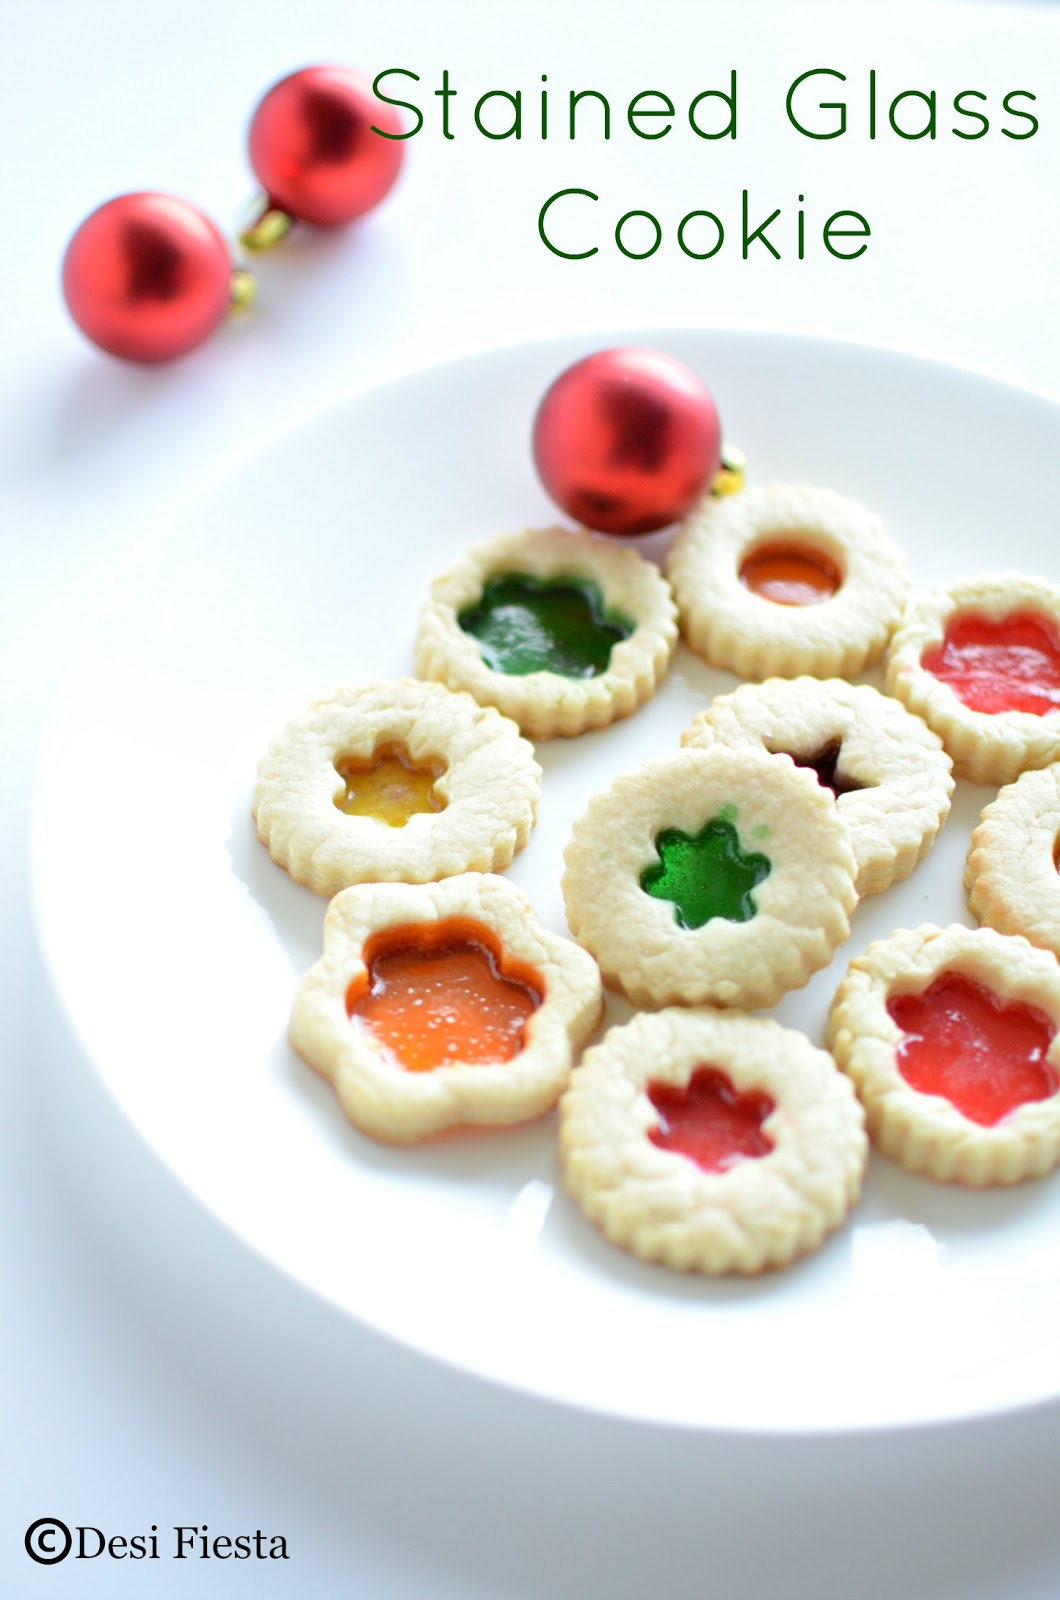 Desi Fiesta : Stained Glass Cookie   Stained Glasses Cookies Recipe